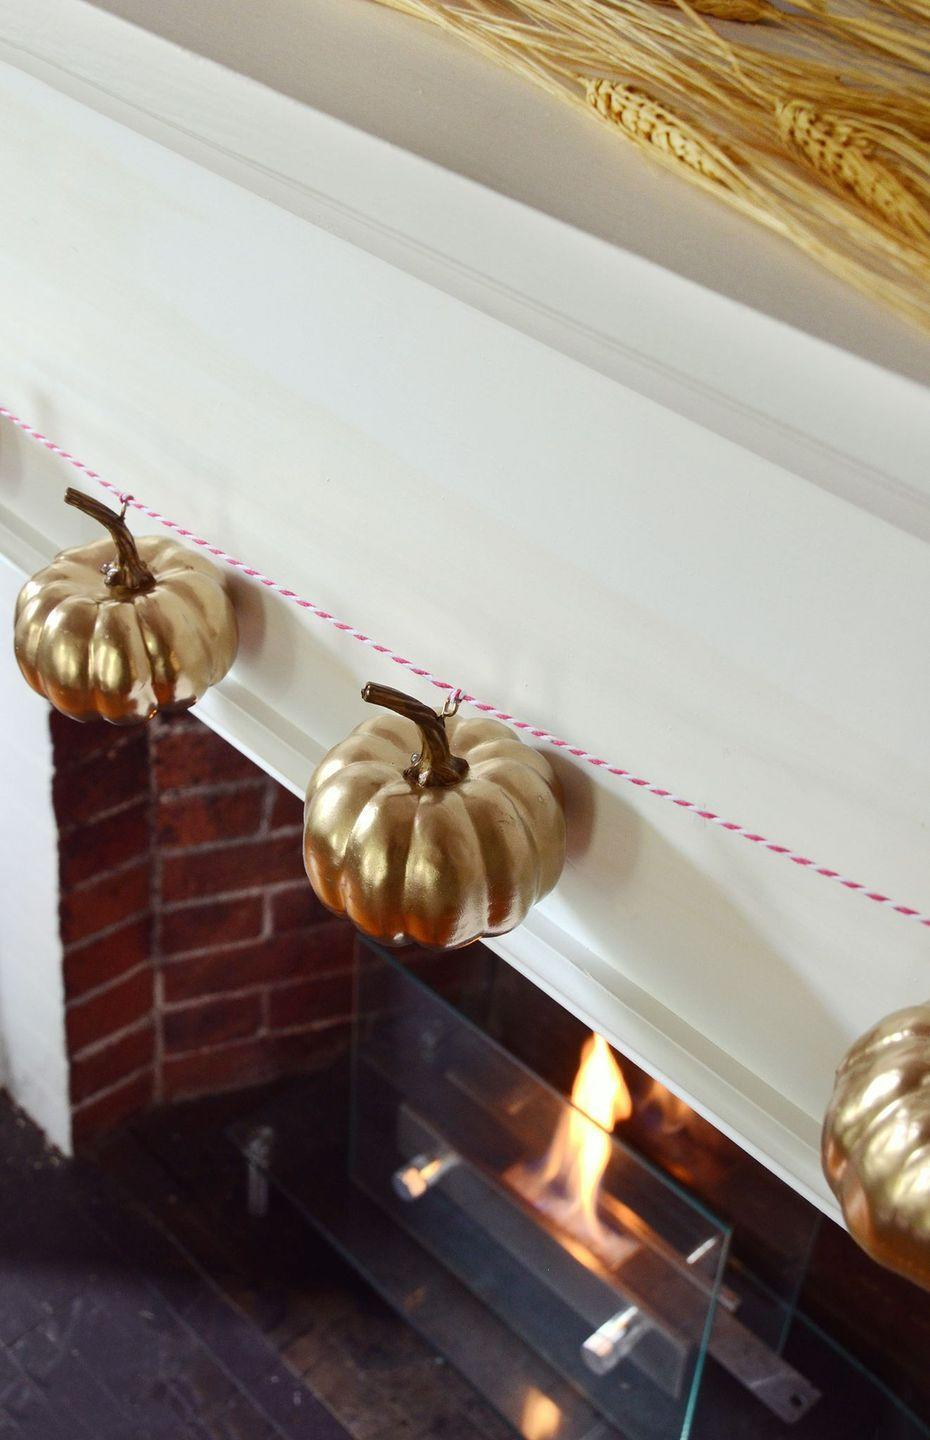 """<p>Sure, pumpkins are naturally orange—but they might look a tad more chic in glimmering, glamorous gold. </p><p><strong>Get the tutorial at <a href=""""https://design-fixation.com/2018/08/sponsored-diy-fall-pumpkin-garland.html"""" rel=""""nofollow noopener"""" target=""""_blank"""" data-ylk=""""slk:Design Fixation"""" class=""""link rapid-noclick-resp"""">Design Fixation</a>.</strong></p><p><a class=""""link rapid-noclick-resp"""" href=""""https://go.redirectingat.com?id=74968X1596630&url=https%3A%2F%2Fwww.walmart.com%2Fip%2FGold-Rust-Oleum-American-Accents-2X-Ultra-Cover-Metallic-Spray-Paint-11-oz%2F258625409&sref=https%3A%2F%2Fwww.thepioneerwoman.com%2Fhome-lifestyle%2Fcrafts-diy%2Fg36891743%2Ffall-mantel-decorations%2F"""" rel=""""nofollow noopener"""" target=""""_blank"""" data-ylk=""""slk:SHOP GOLD SPRAY PAINT"""">SHOP GOLD SPRAY PAINT</a></p>"""